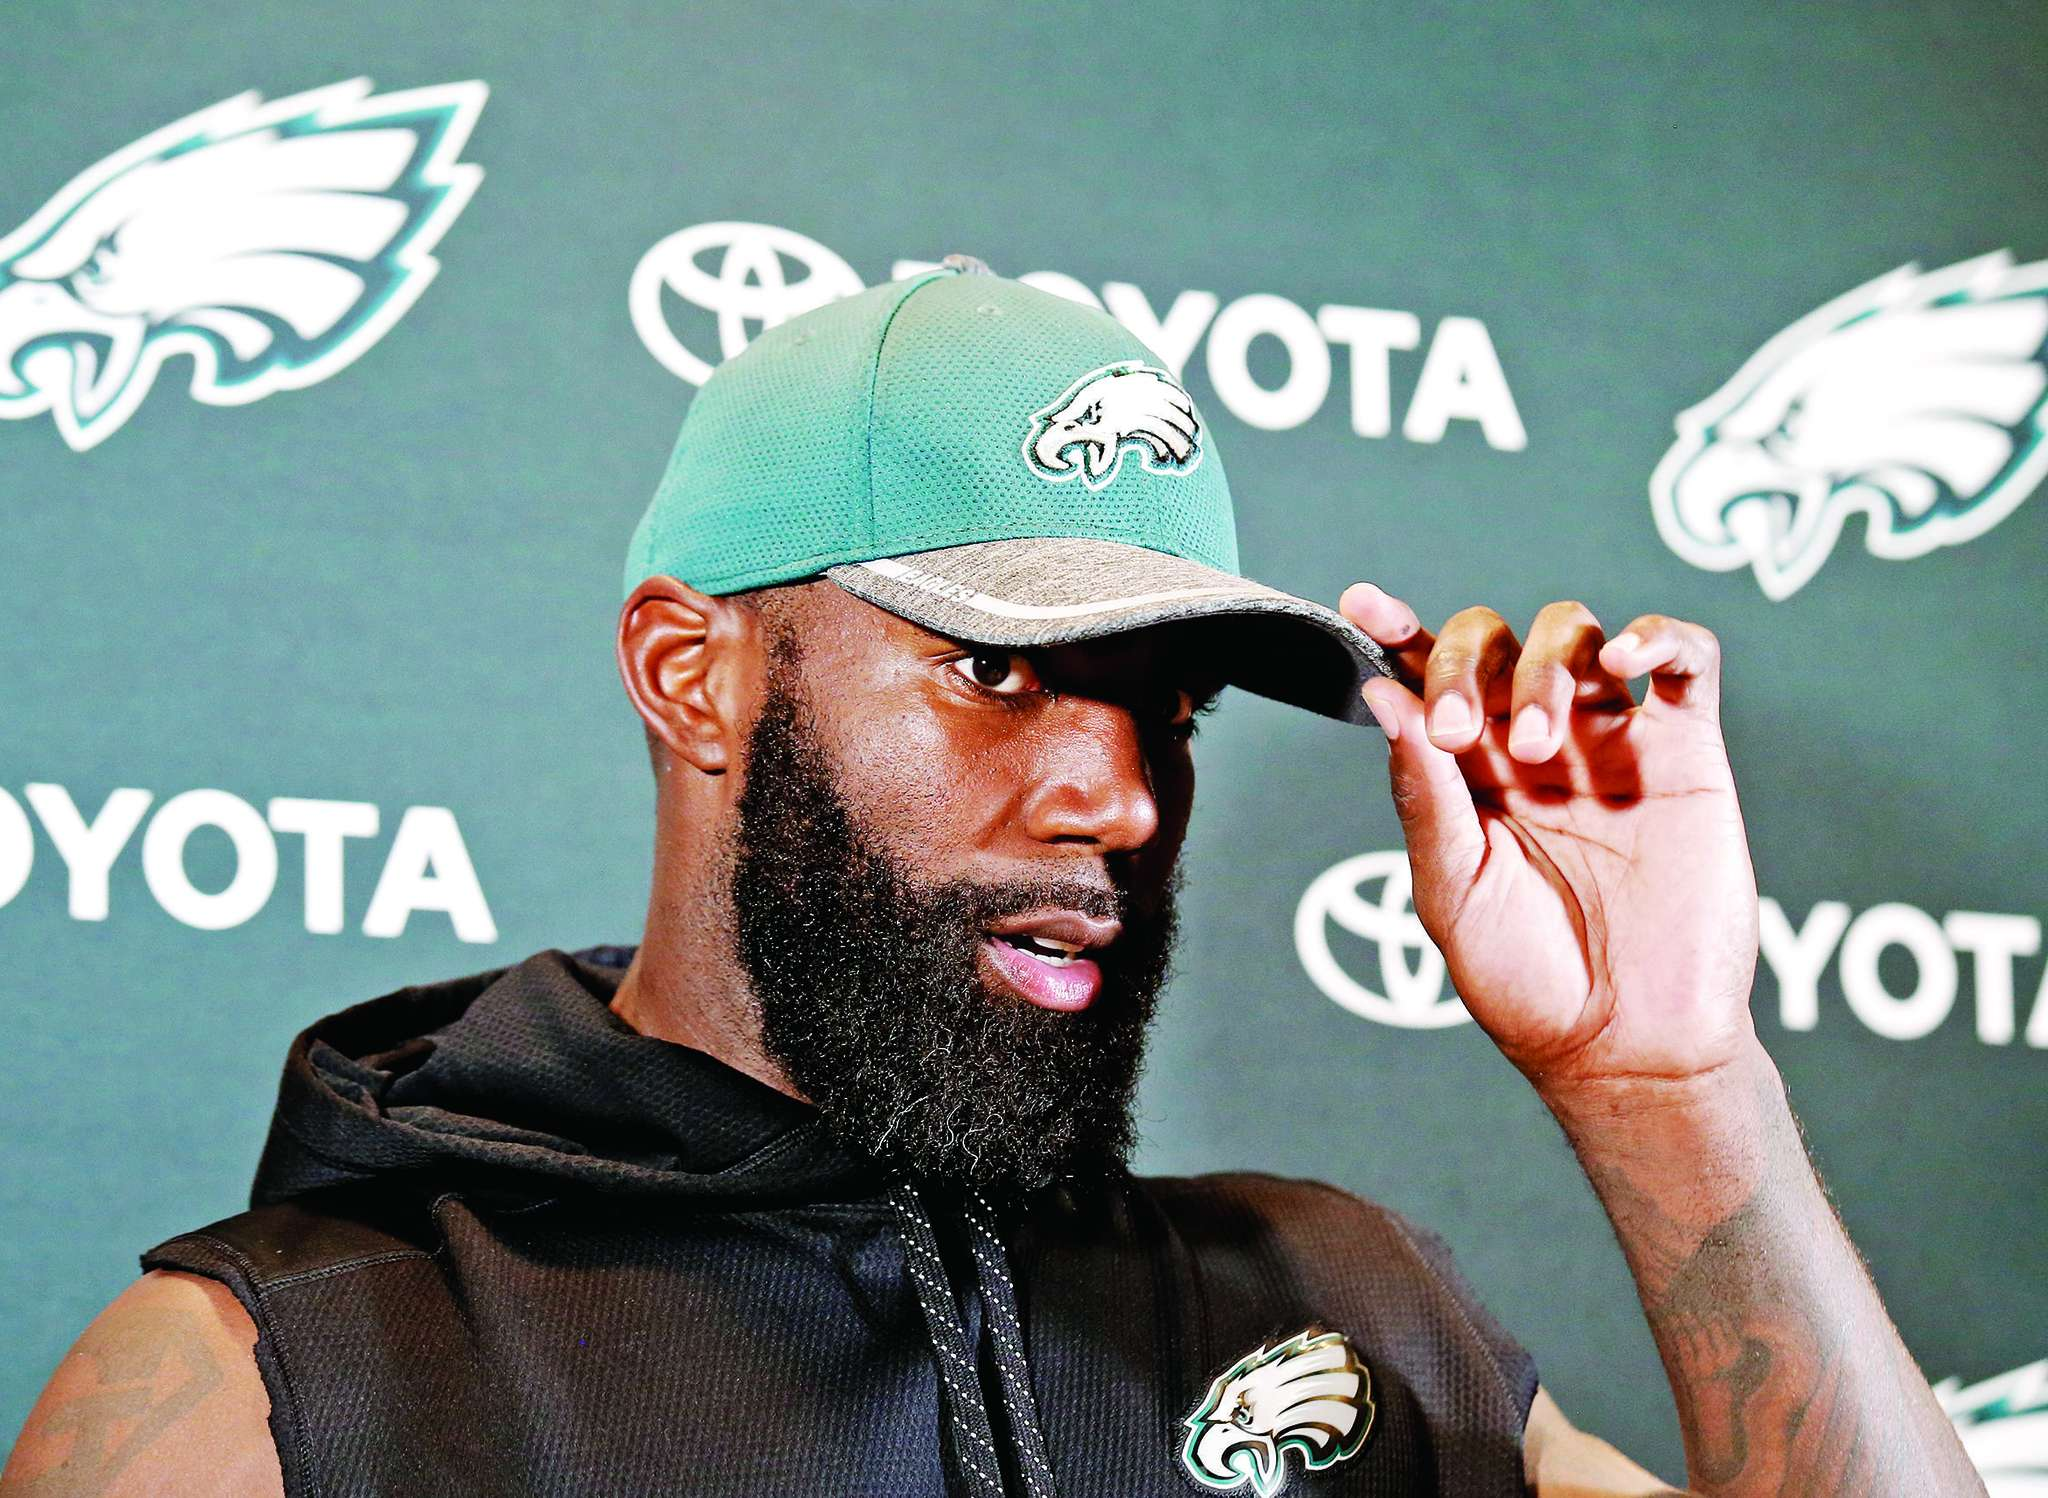 Malcolm Jenkins on reaction to protest: ´The most disheartening thing about it is to see the lack of empathy. And the silence. At some point, your silence becomes a nod of approval.´